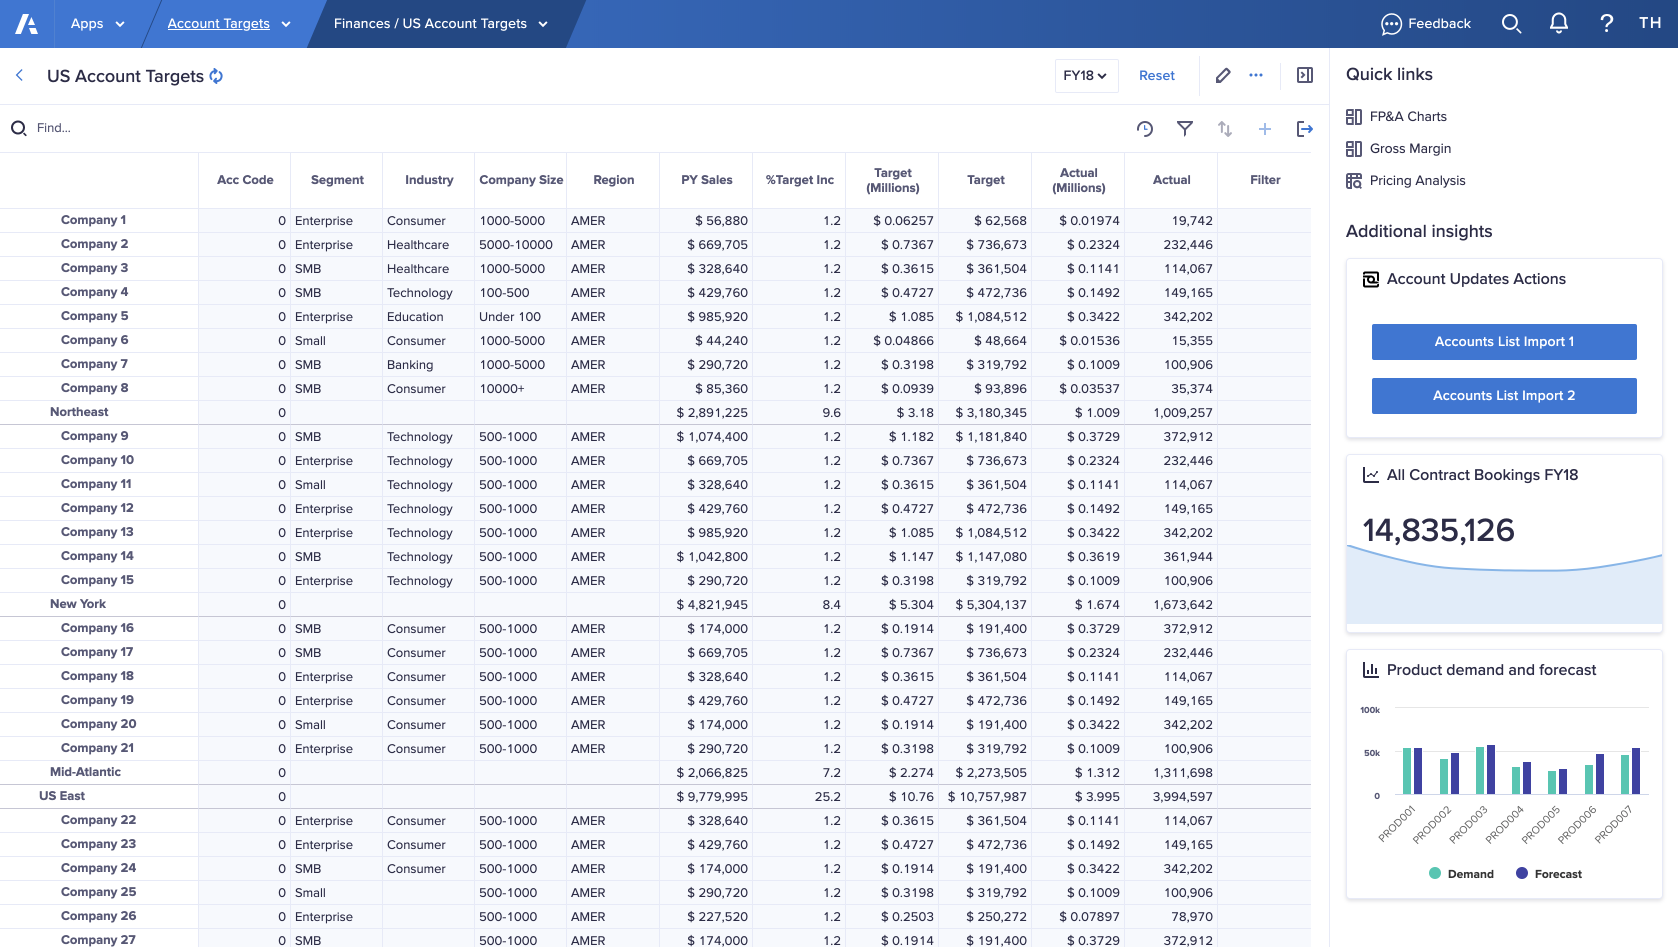 Account targets worksheet. Quick links and Additional insights display in the right panel.